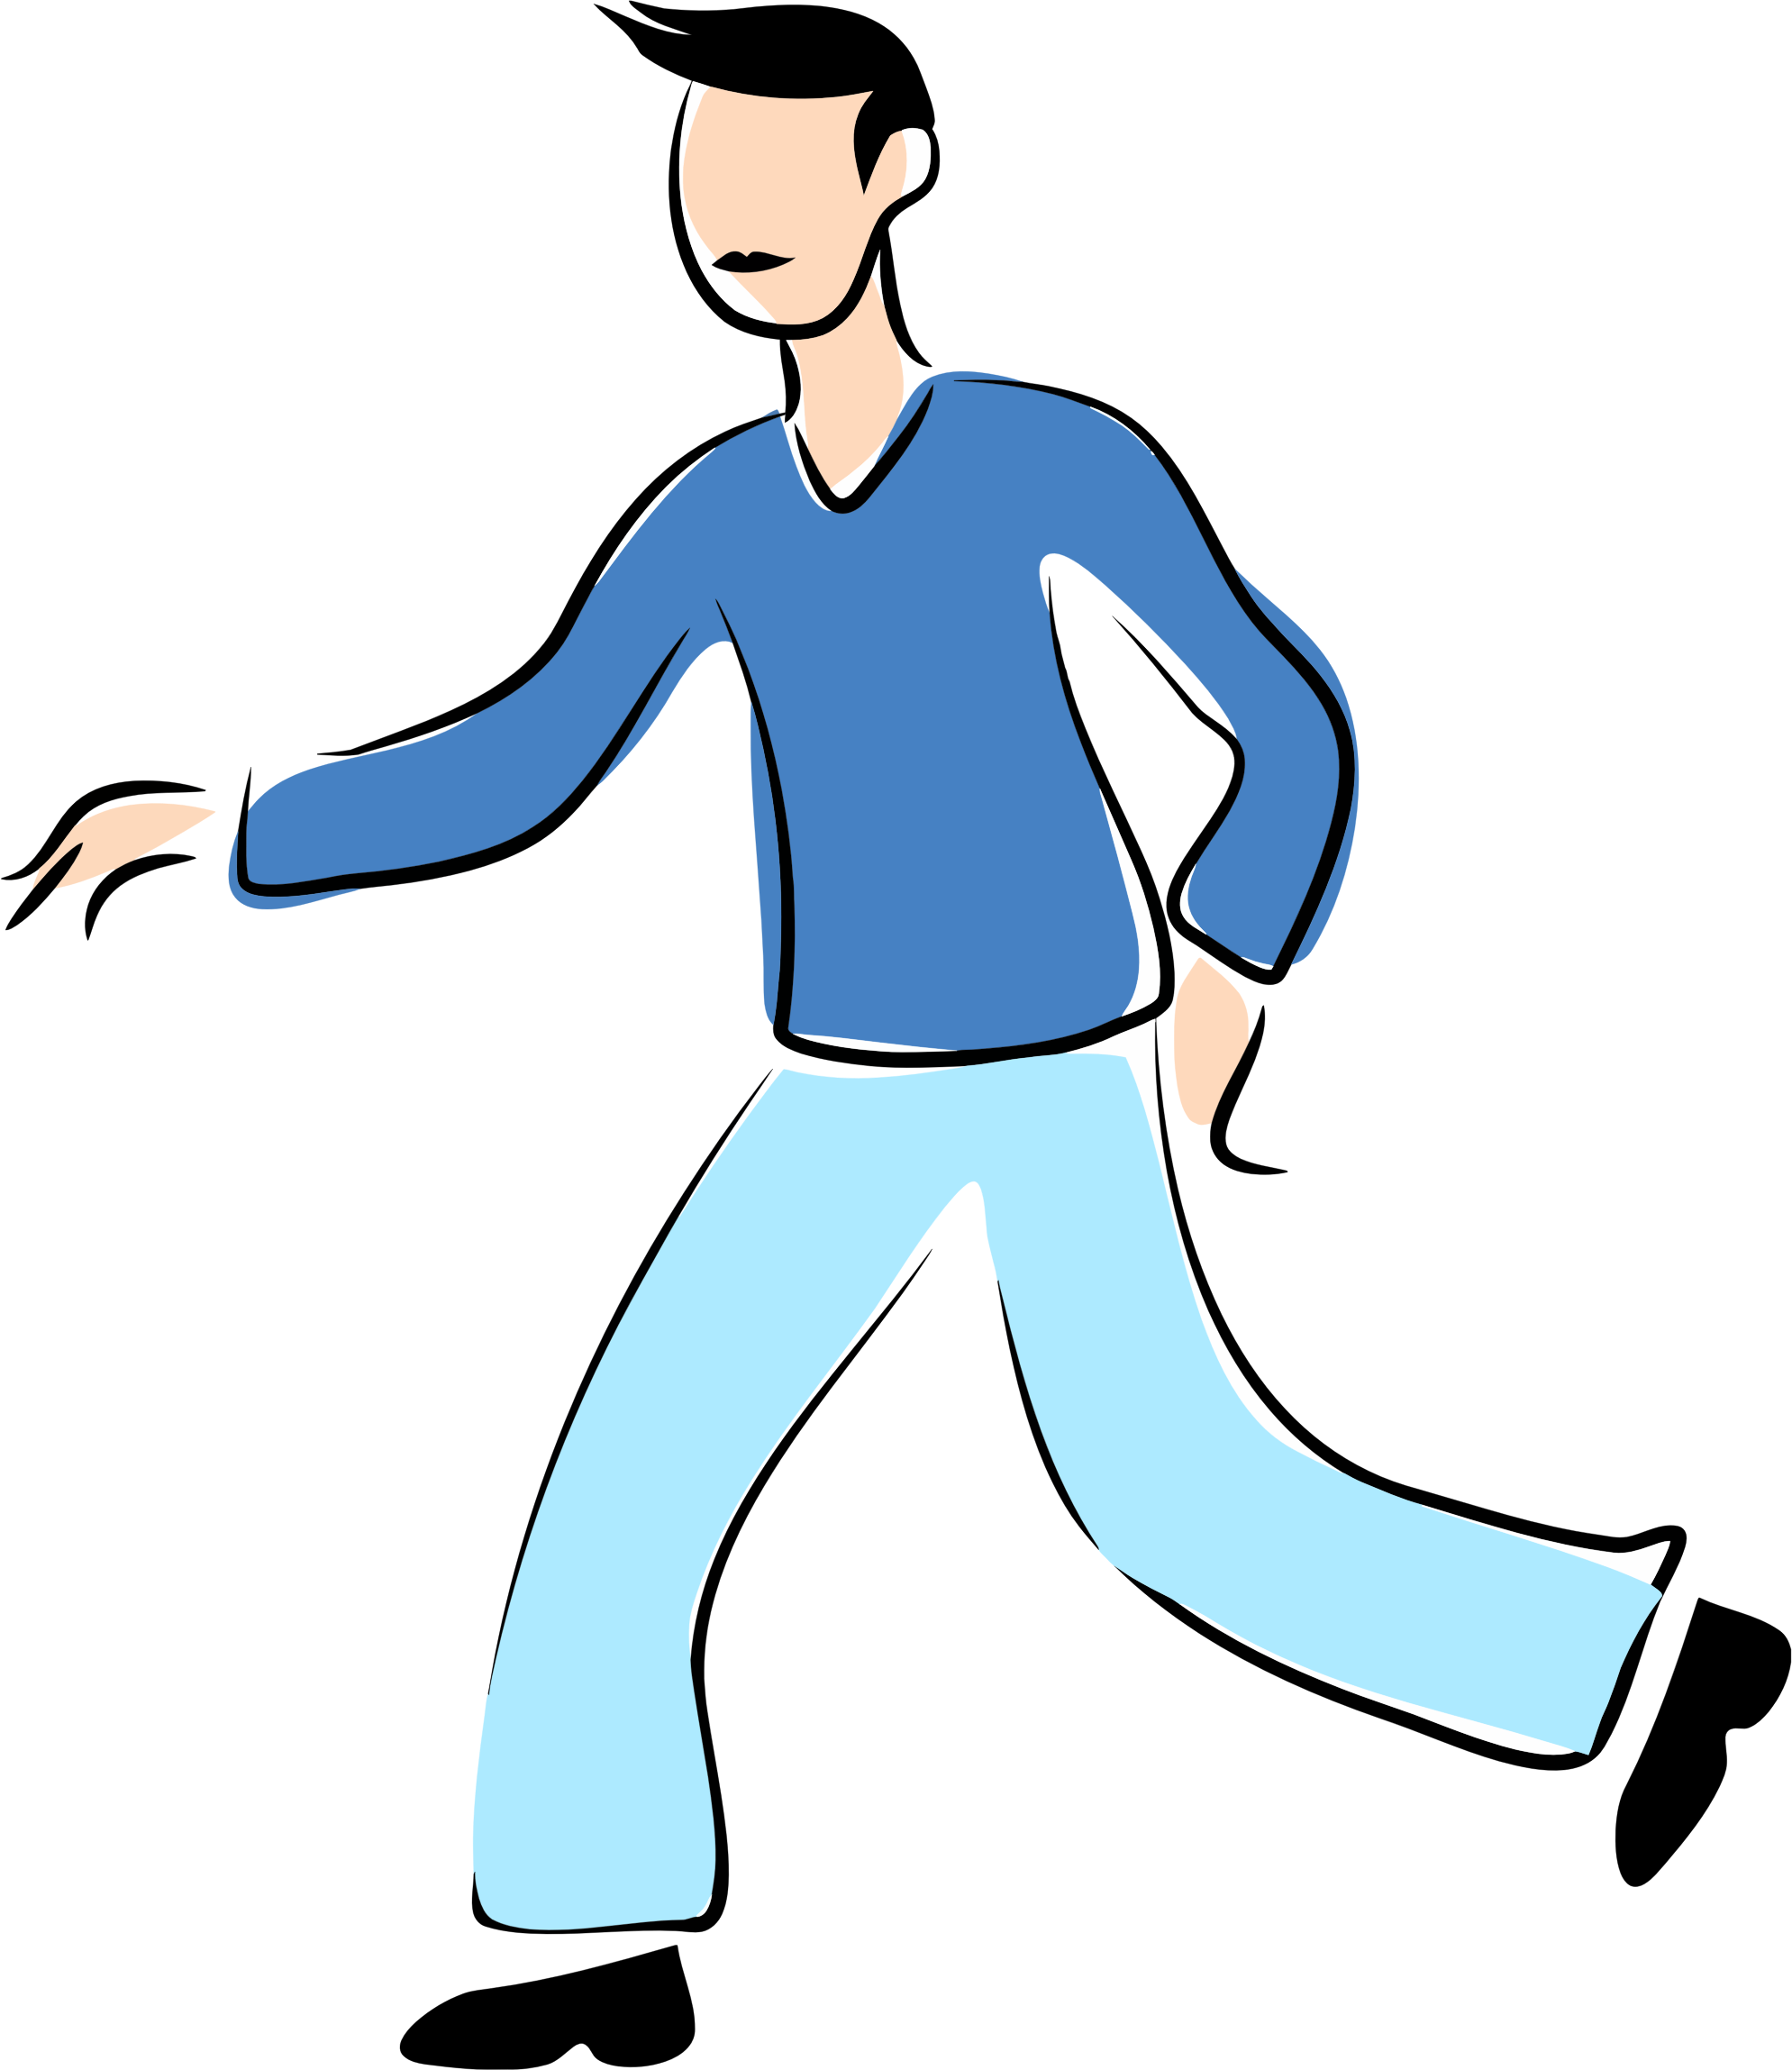 Walking alone clipart vector royalty free stock Free Man Walking Cliparts, Download Free Clip Art, Free Clip ... vector royalty free stock